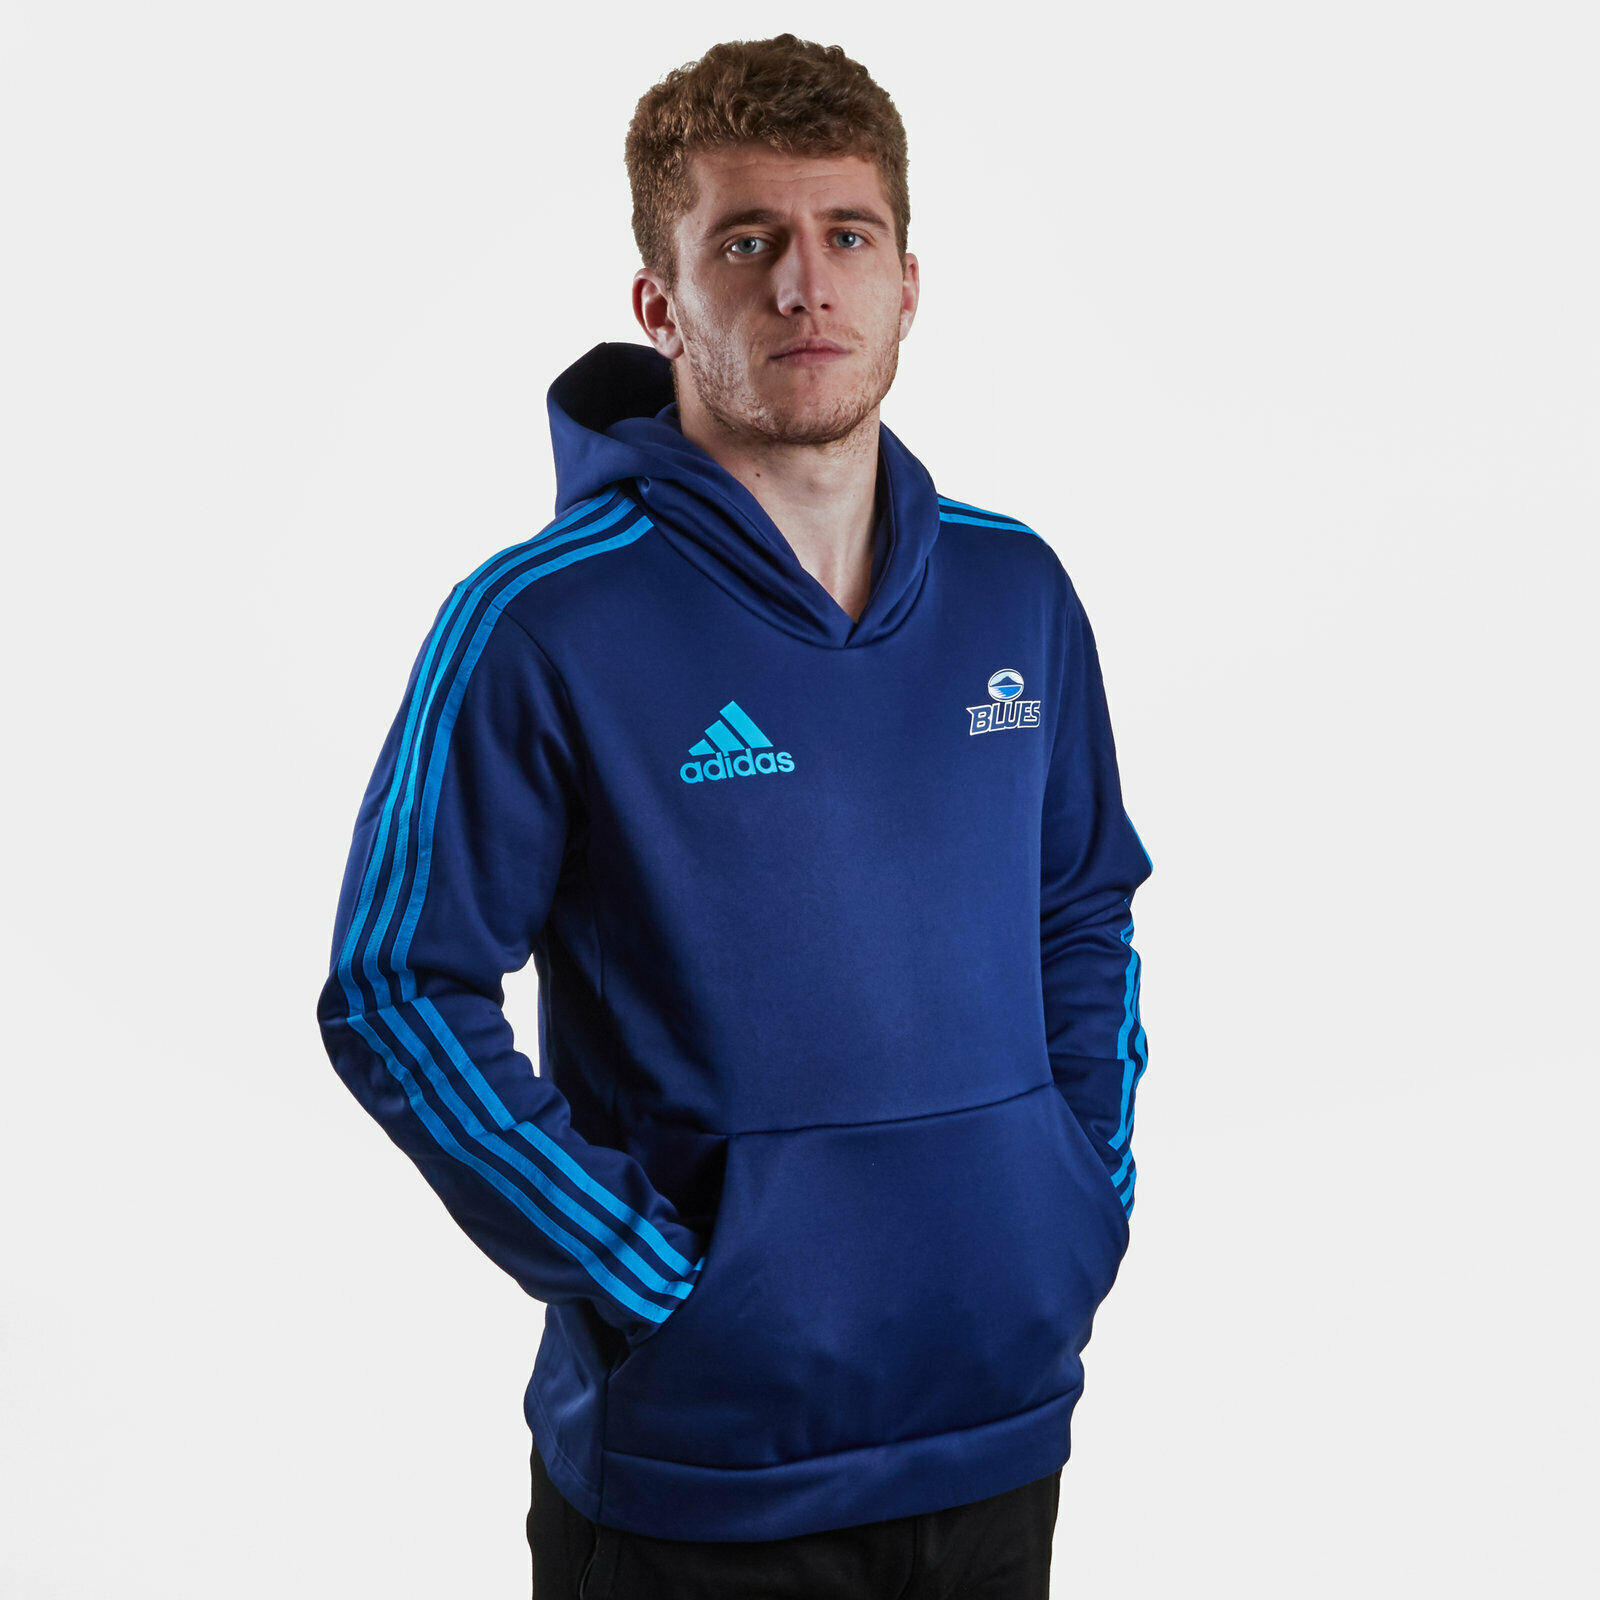 Adidas Mens bluees 2019 Hooded Rugby Sweat Top Sweatshirt Hoodie  bluee